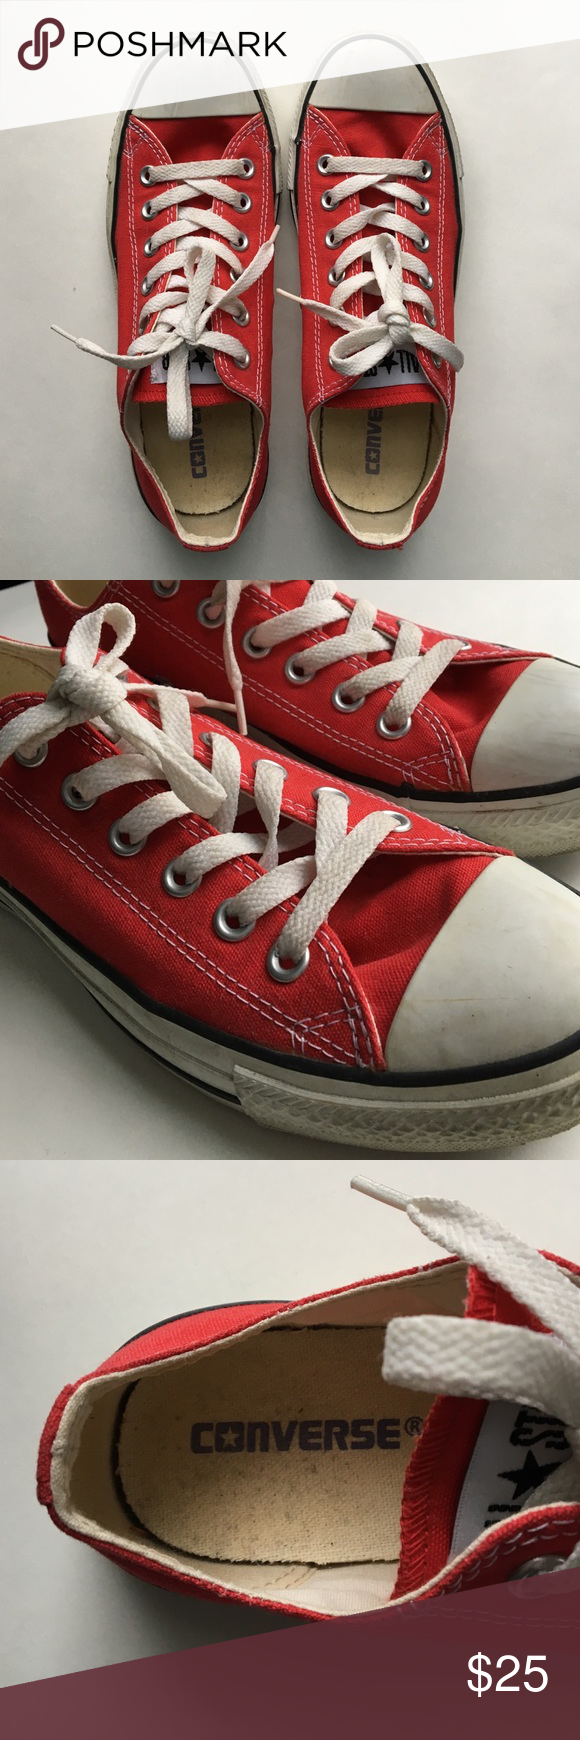 Converse Chuck Taylor All Star Low Top Fun and funky pair of sneakers. Worn only twice. A few scuffs but otherwise perfect condition. Size 8. Converse Shoes Sneakers